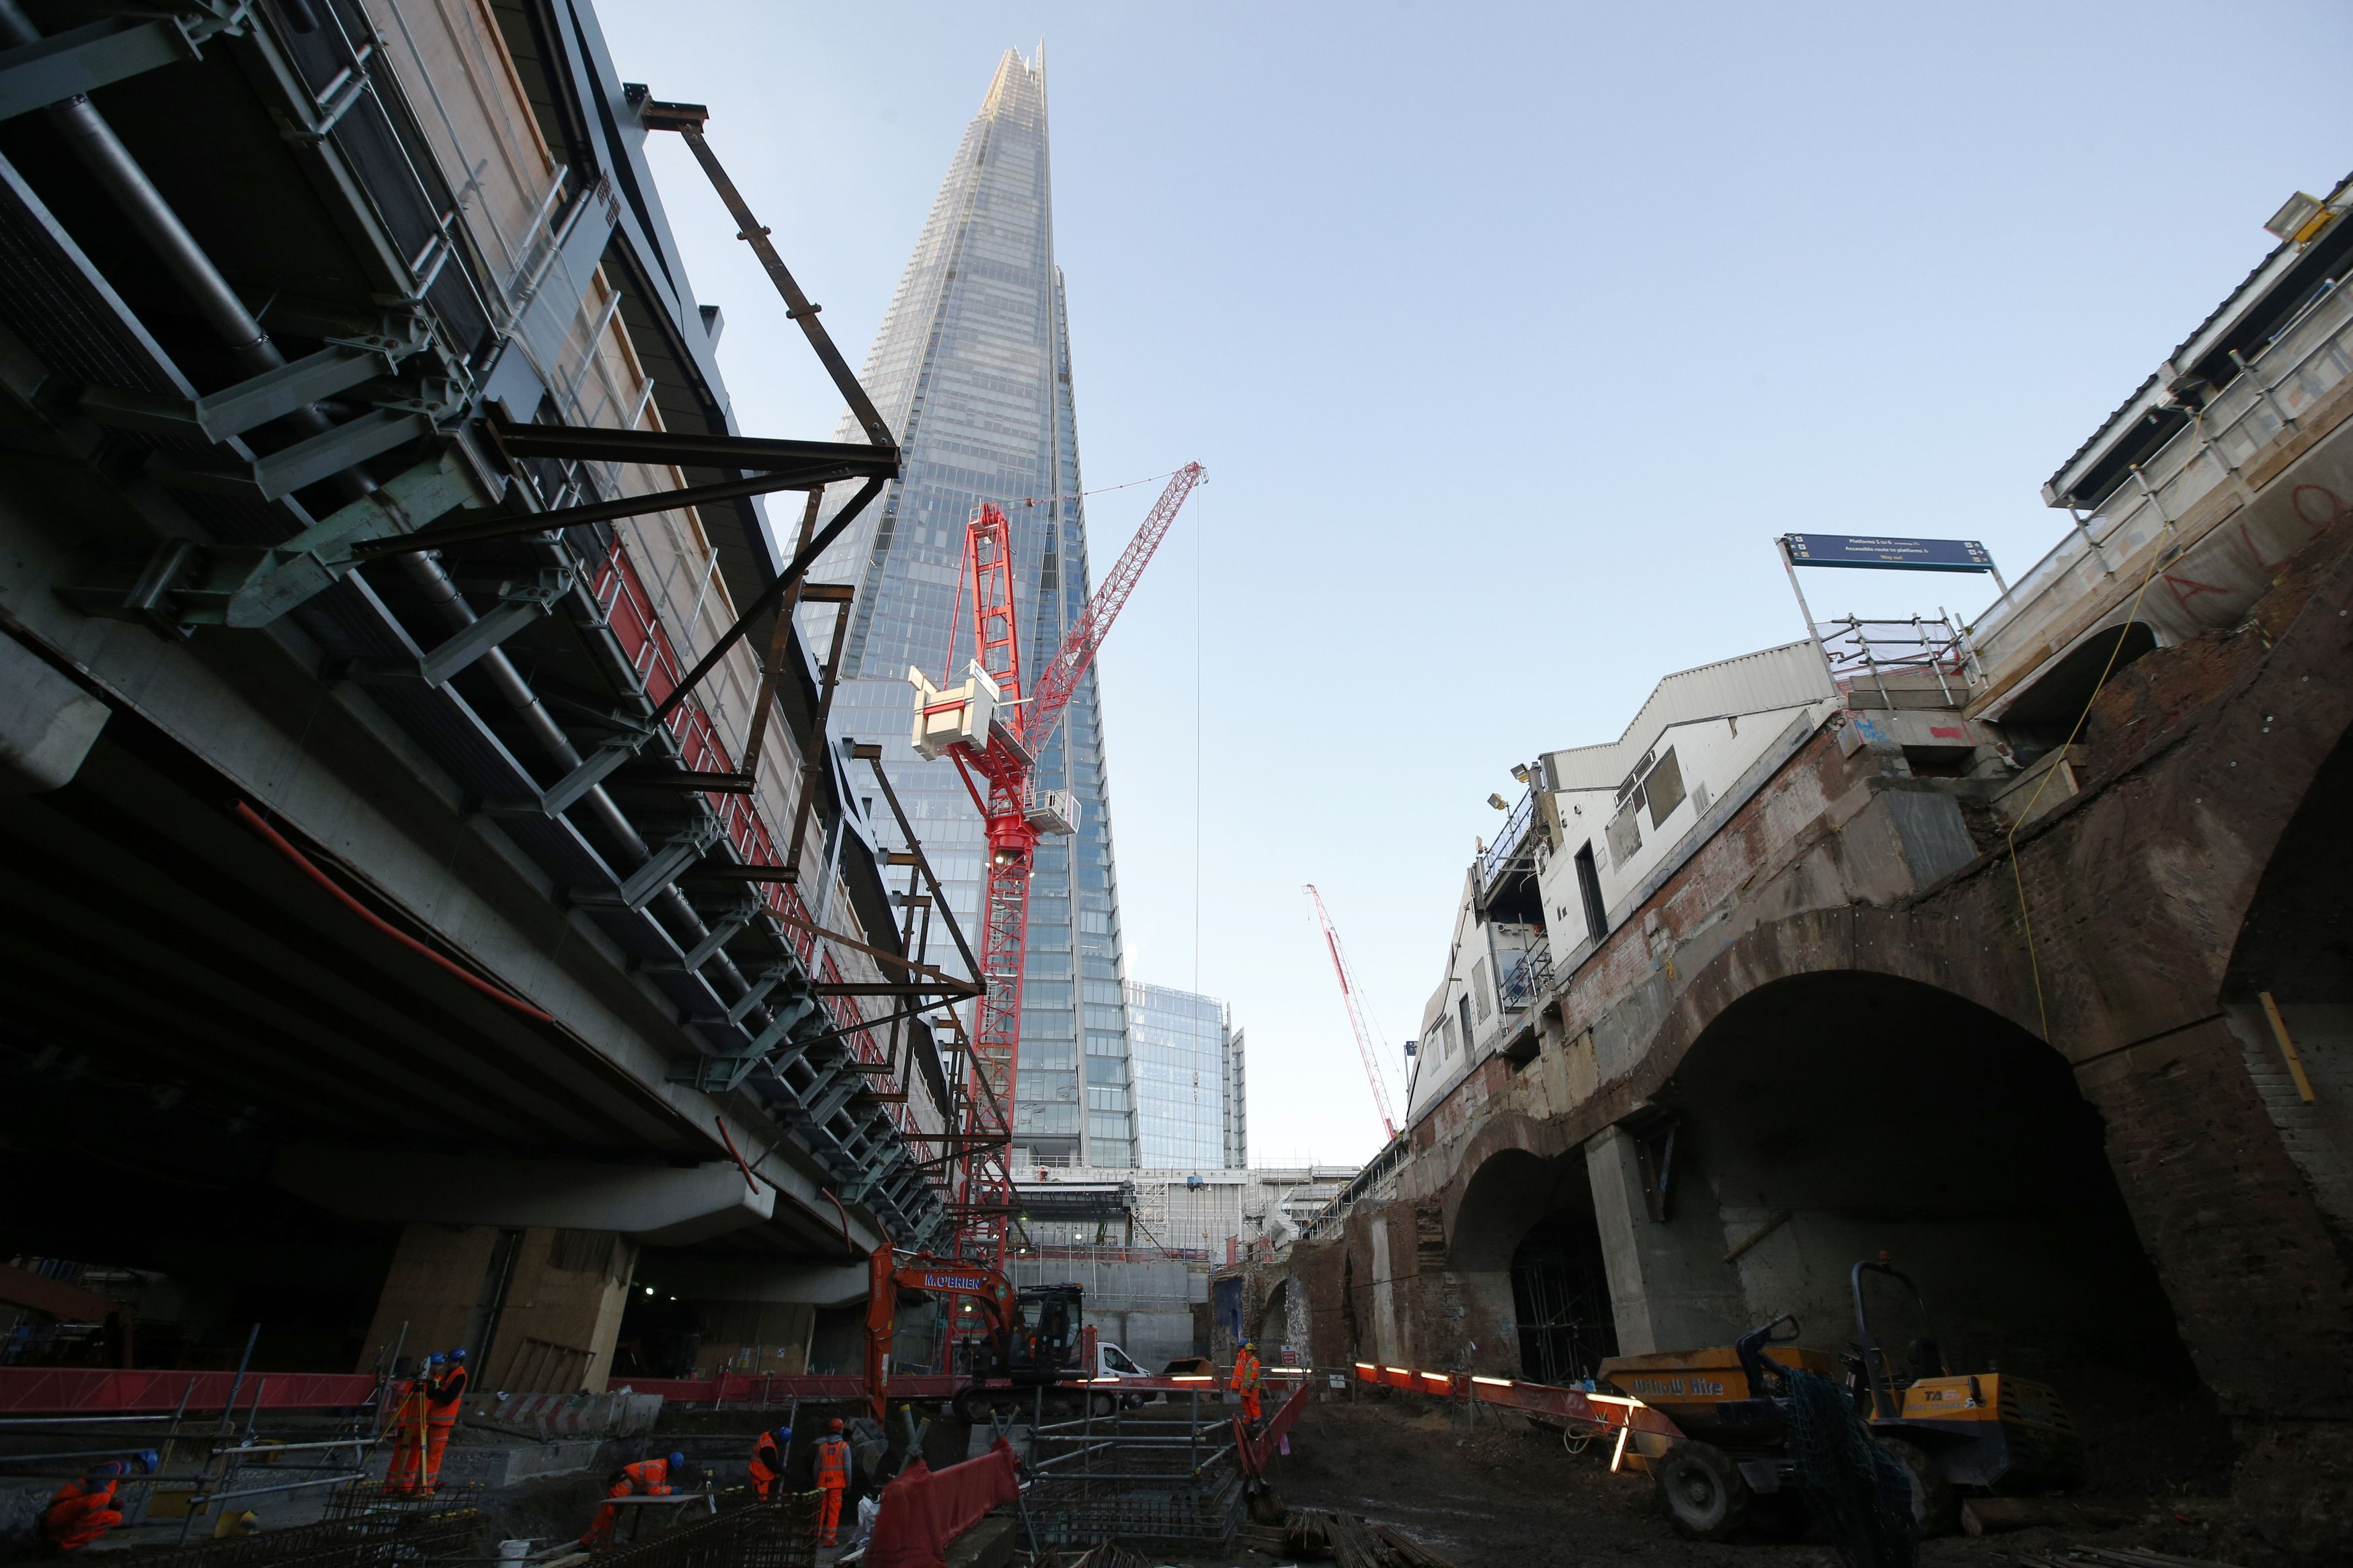 Construction work on what will eventually be the concourse area below the new platforms ten (top right) and eleven (top left) at London Bridge railway station, Southwark, London as the capital's oldest station undergoes rebuilding as part of the �6.5bn Thameslink Programme. PRESS ASSOCIATION Photo. Picture date: Monday November 24, 2014.  From Saturday 20 December 2014 to Sunday 4 January 2015 inclusive, Southern and Thameslink trains will not call at London Bridge. Also, from Monday 22 to Wednesday 24 December some Southeastern Charing Cross services will not call at London Bridge in the morning peak as work continues. Photo credit should read: Jonathan Brady/PA Wire